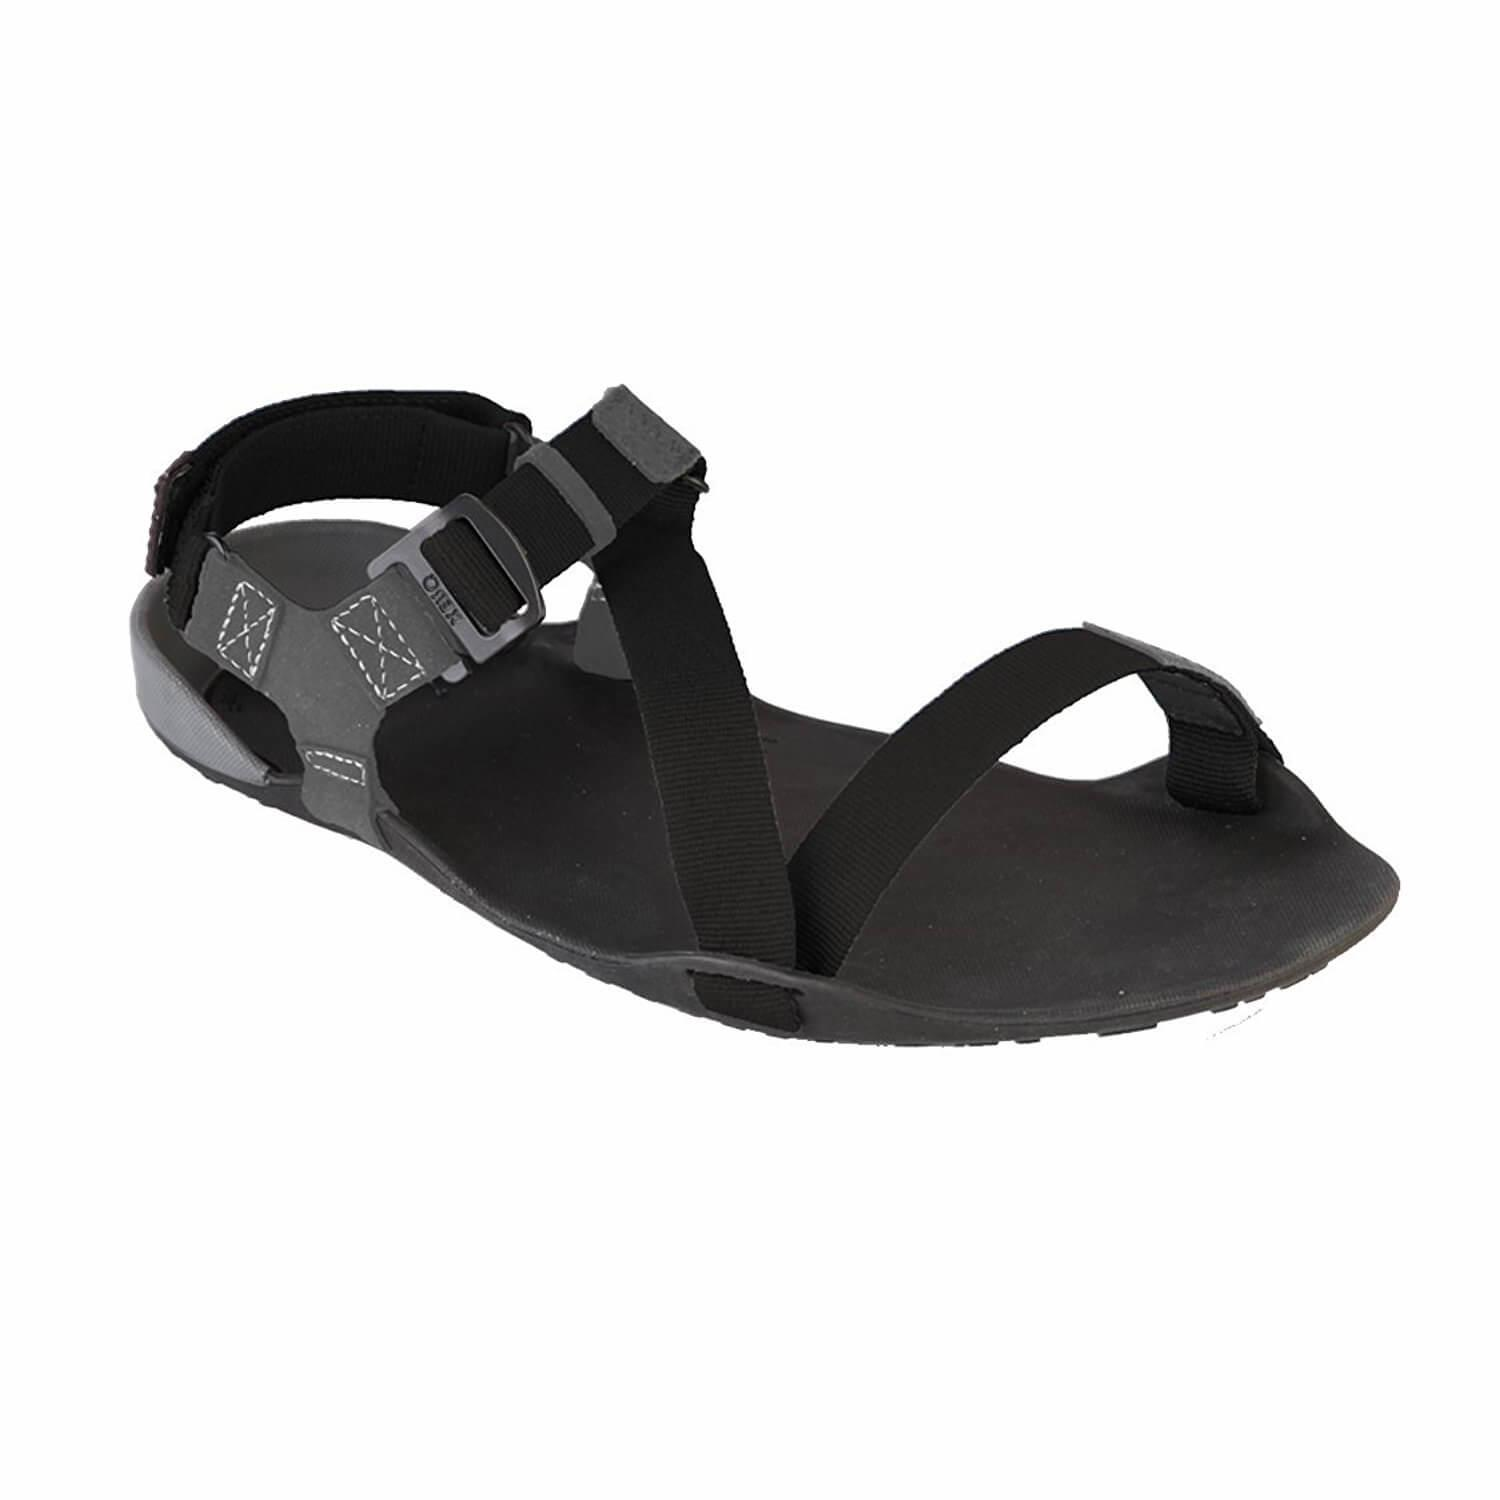 7f5ae6d472bae Best Running Sandals Reviewed in 2019 | RunnerClick